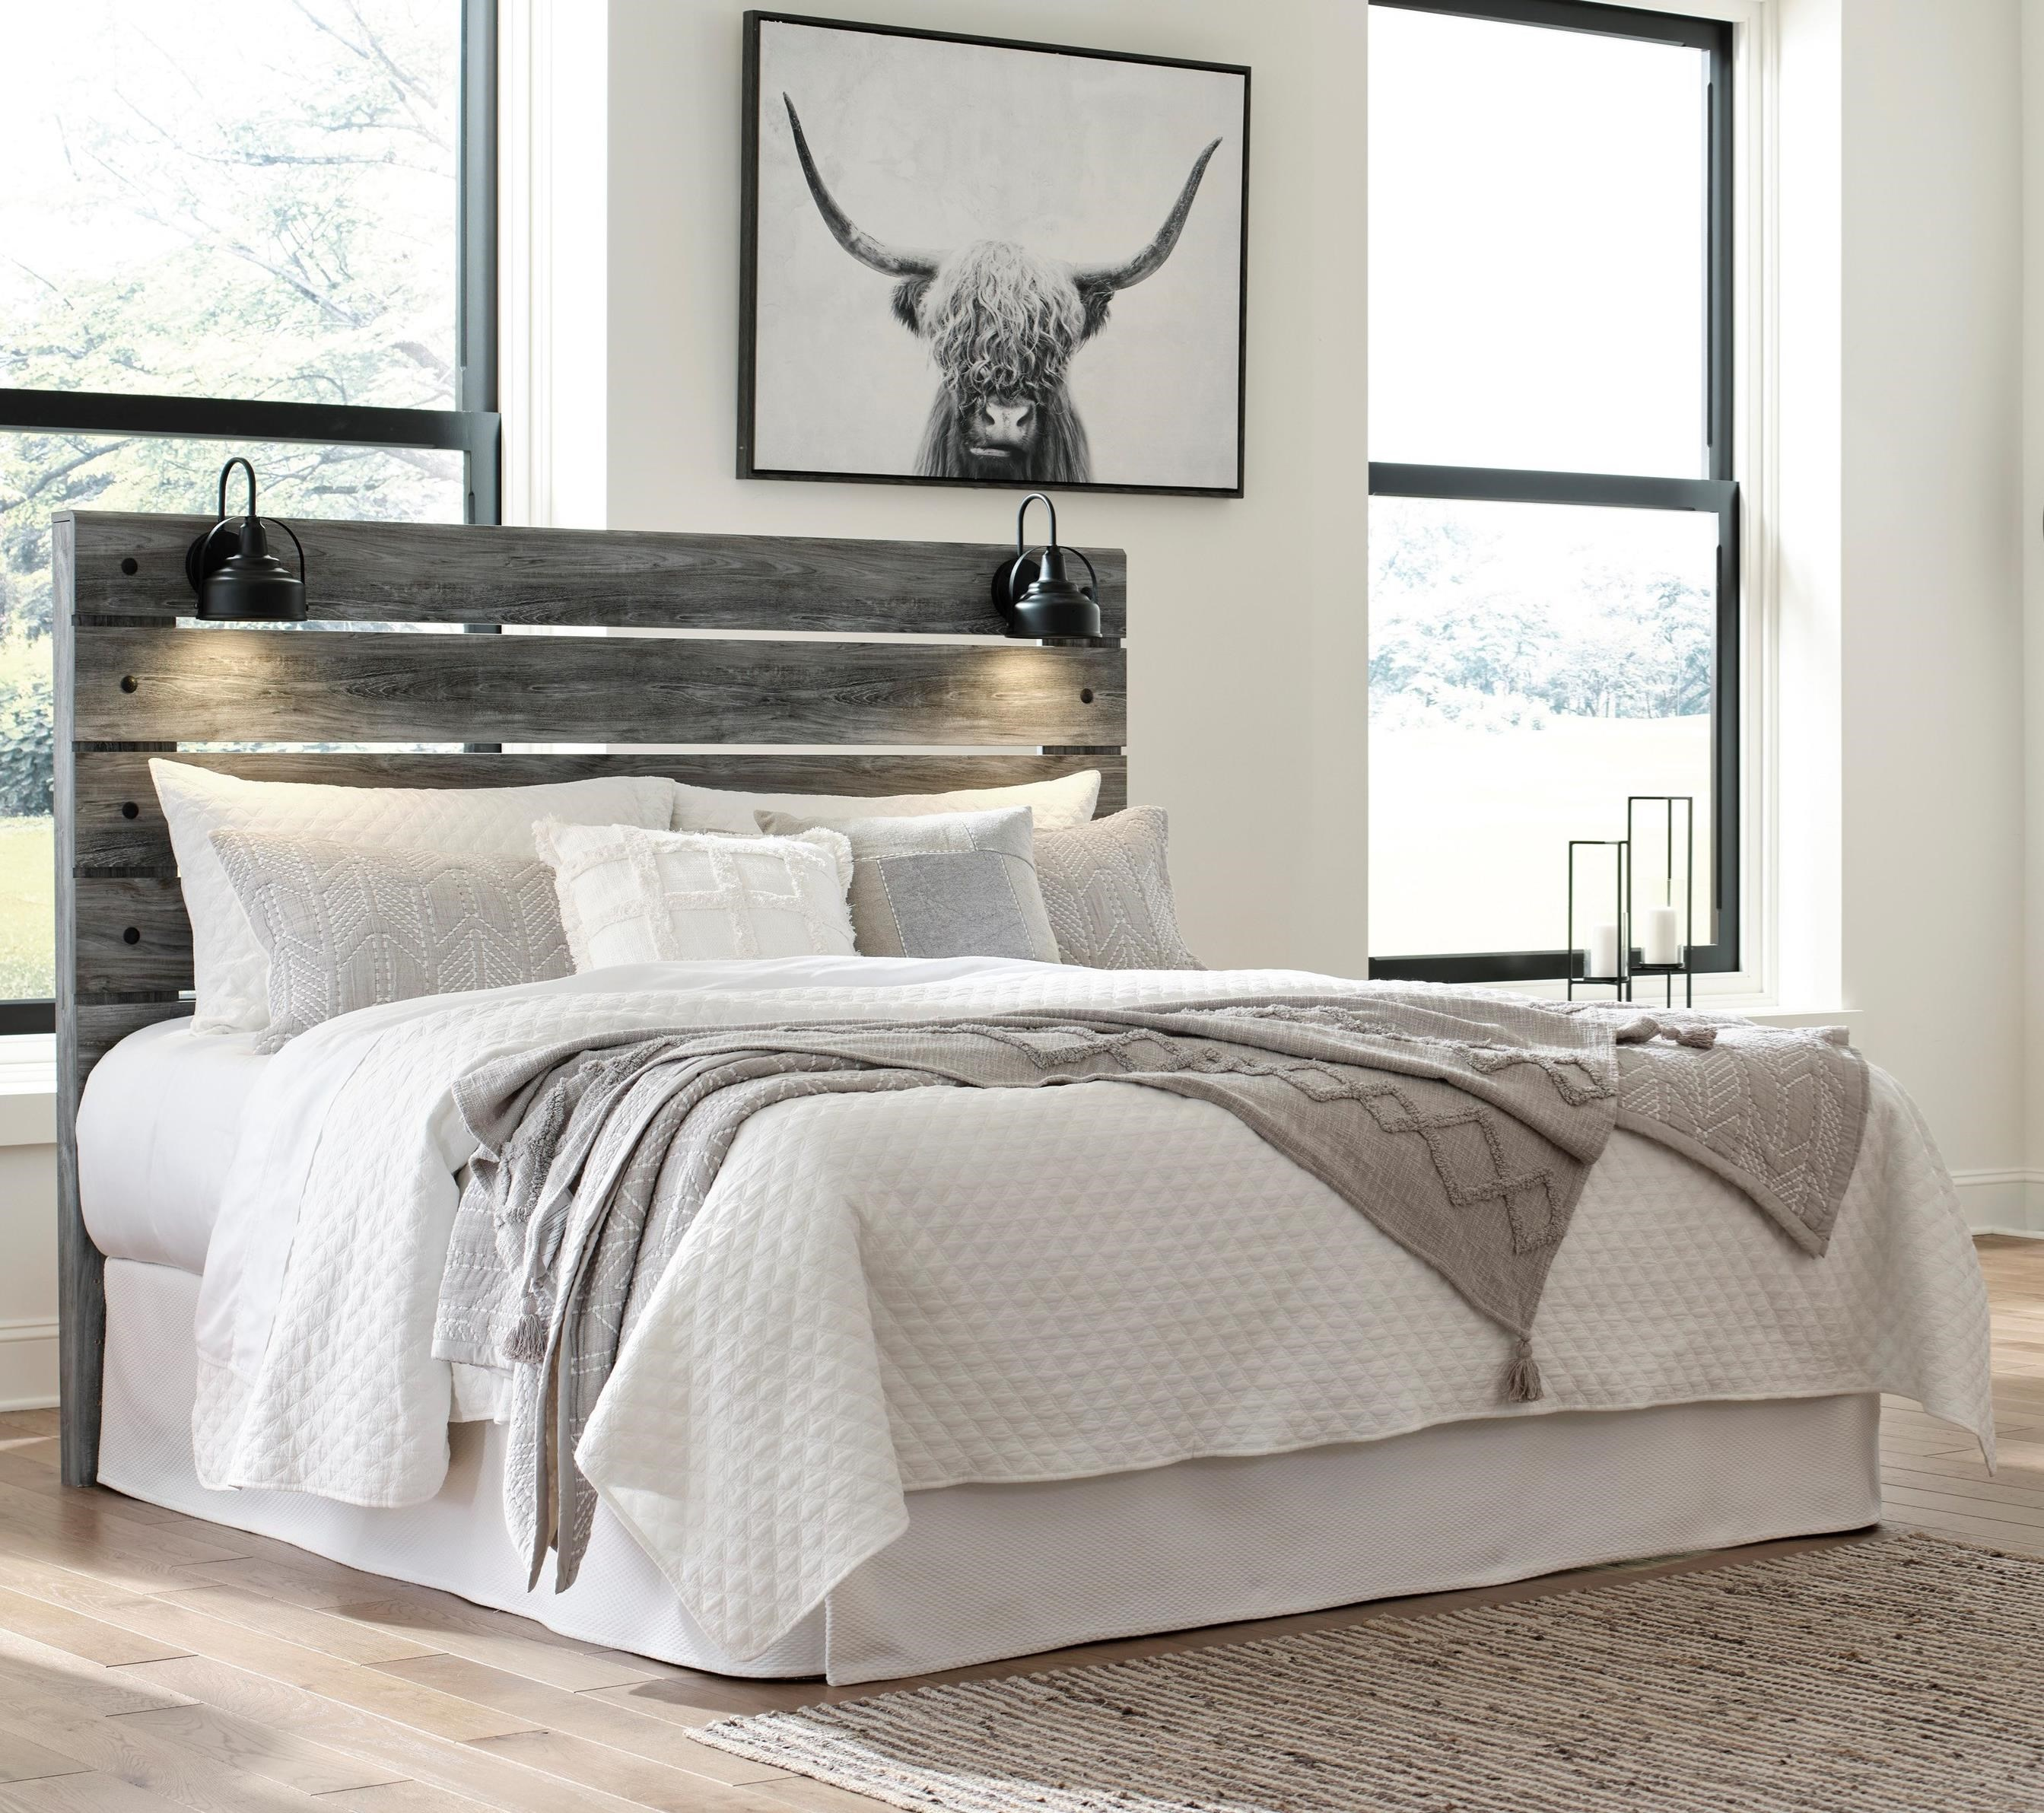 Baystorm King Panel Headboard by Signature Design by Ashley at Zak's Home Outlet